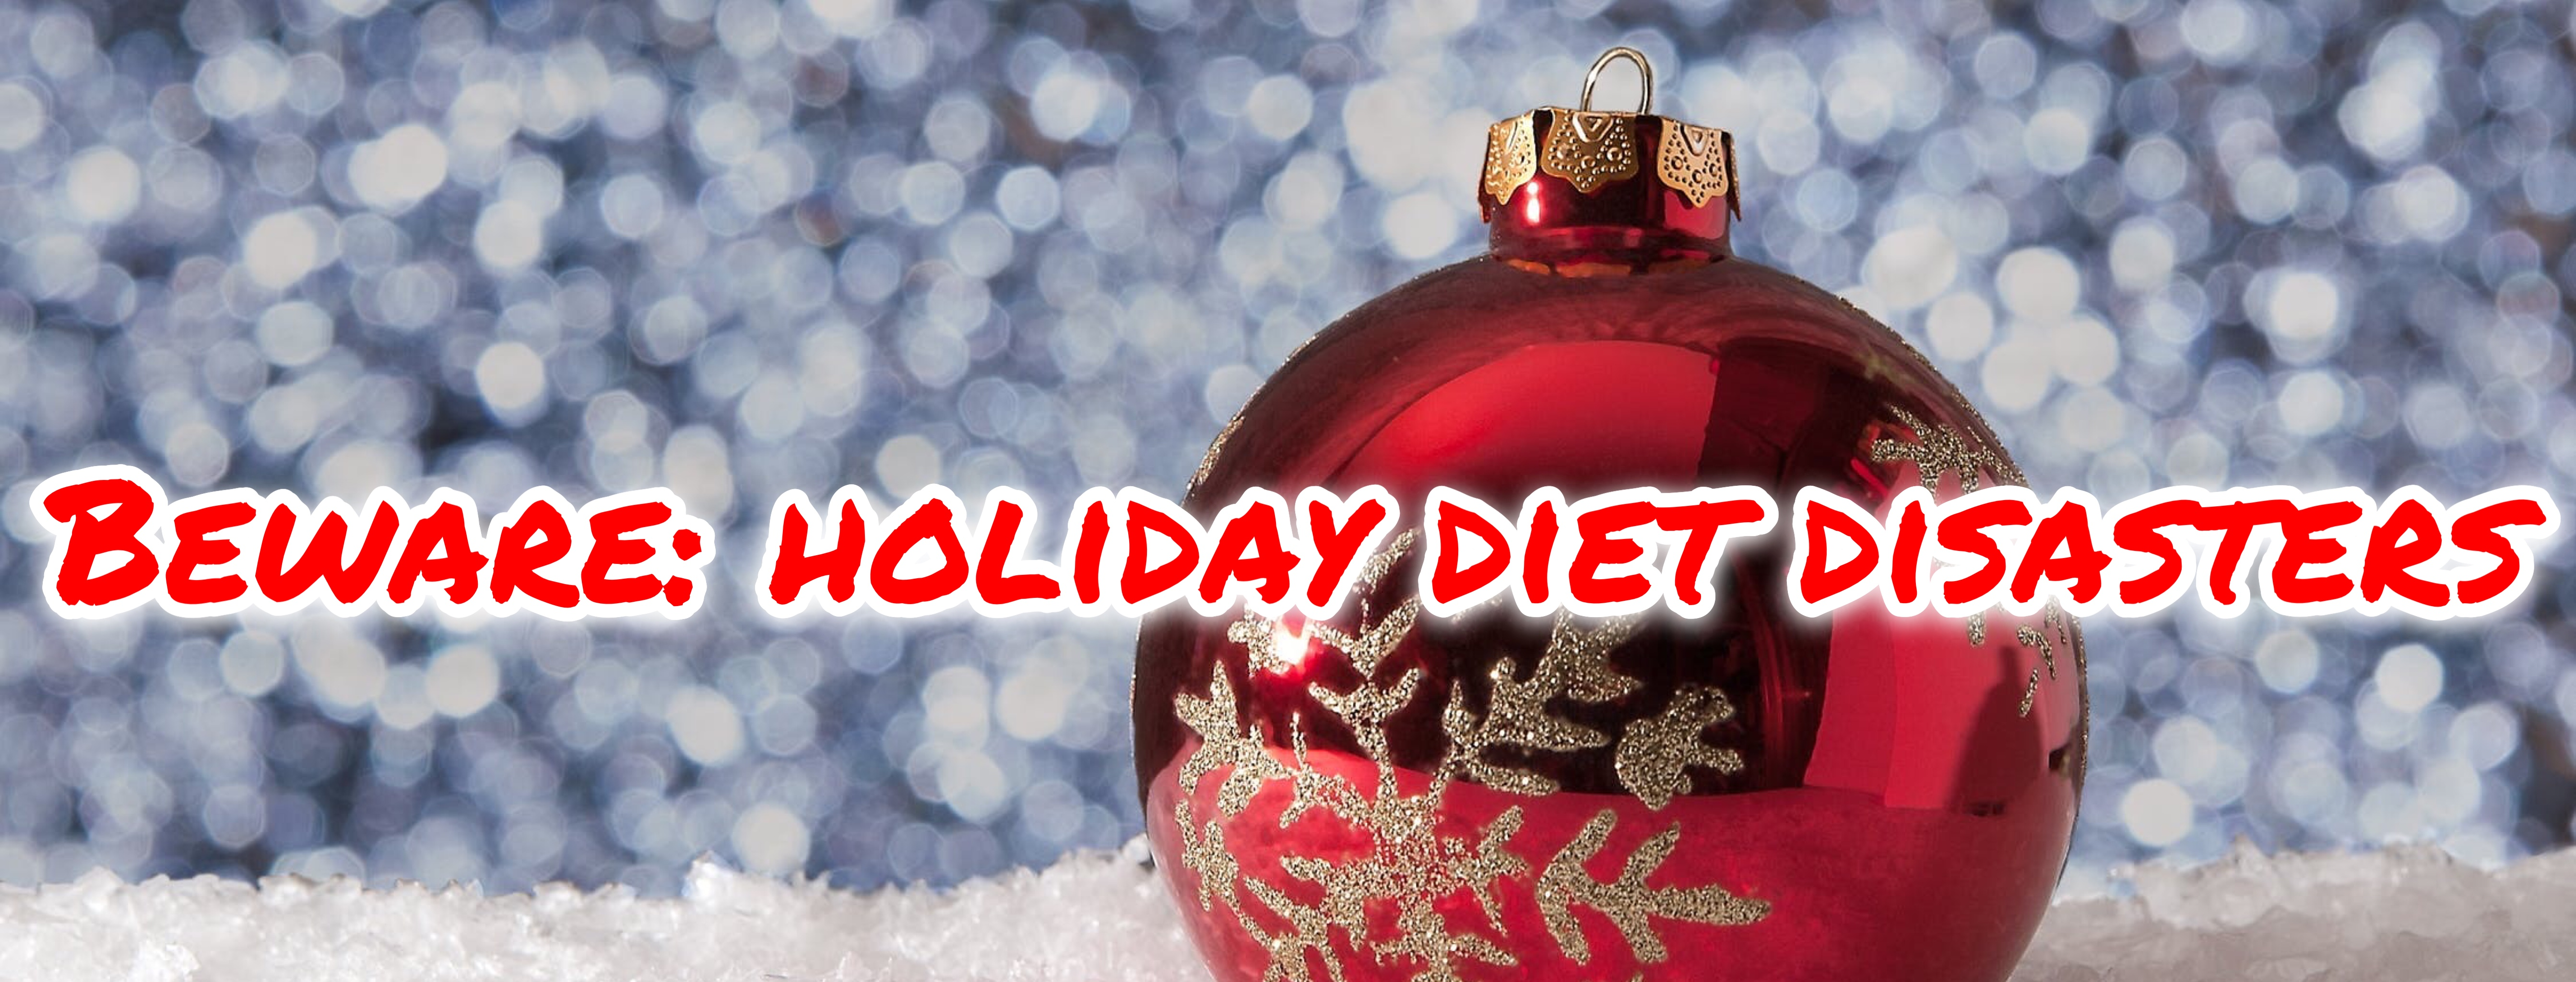 3 Holiday Diet Disasters You Need To Be Aware Of